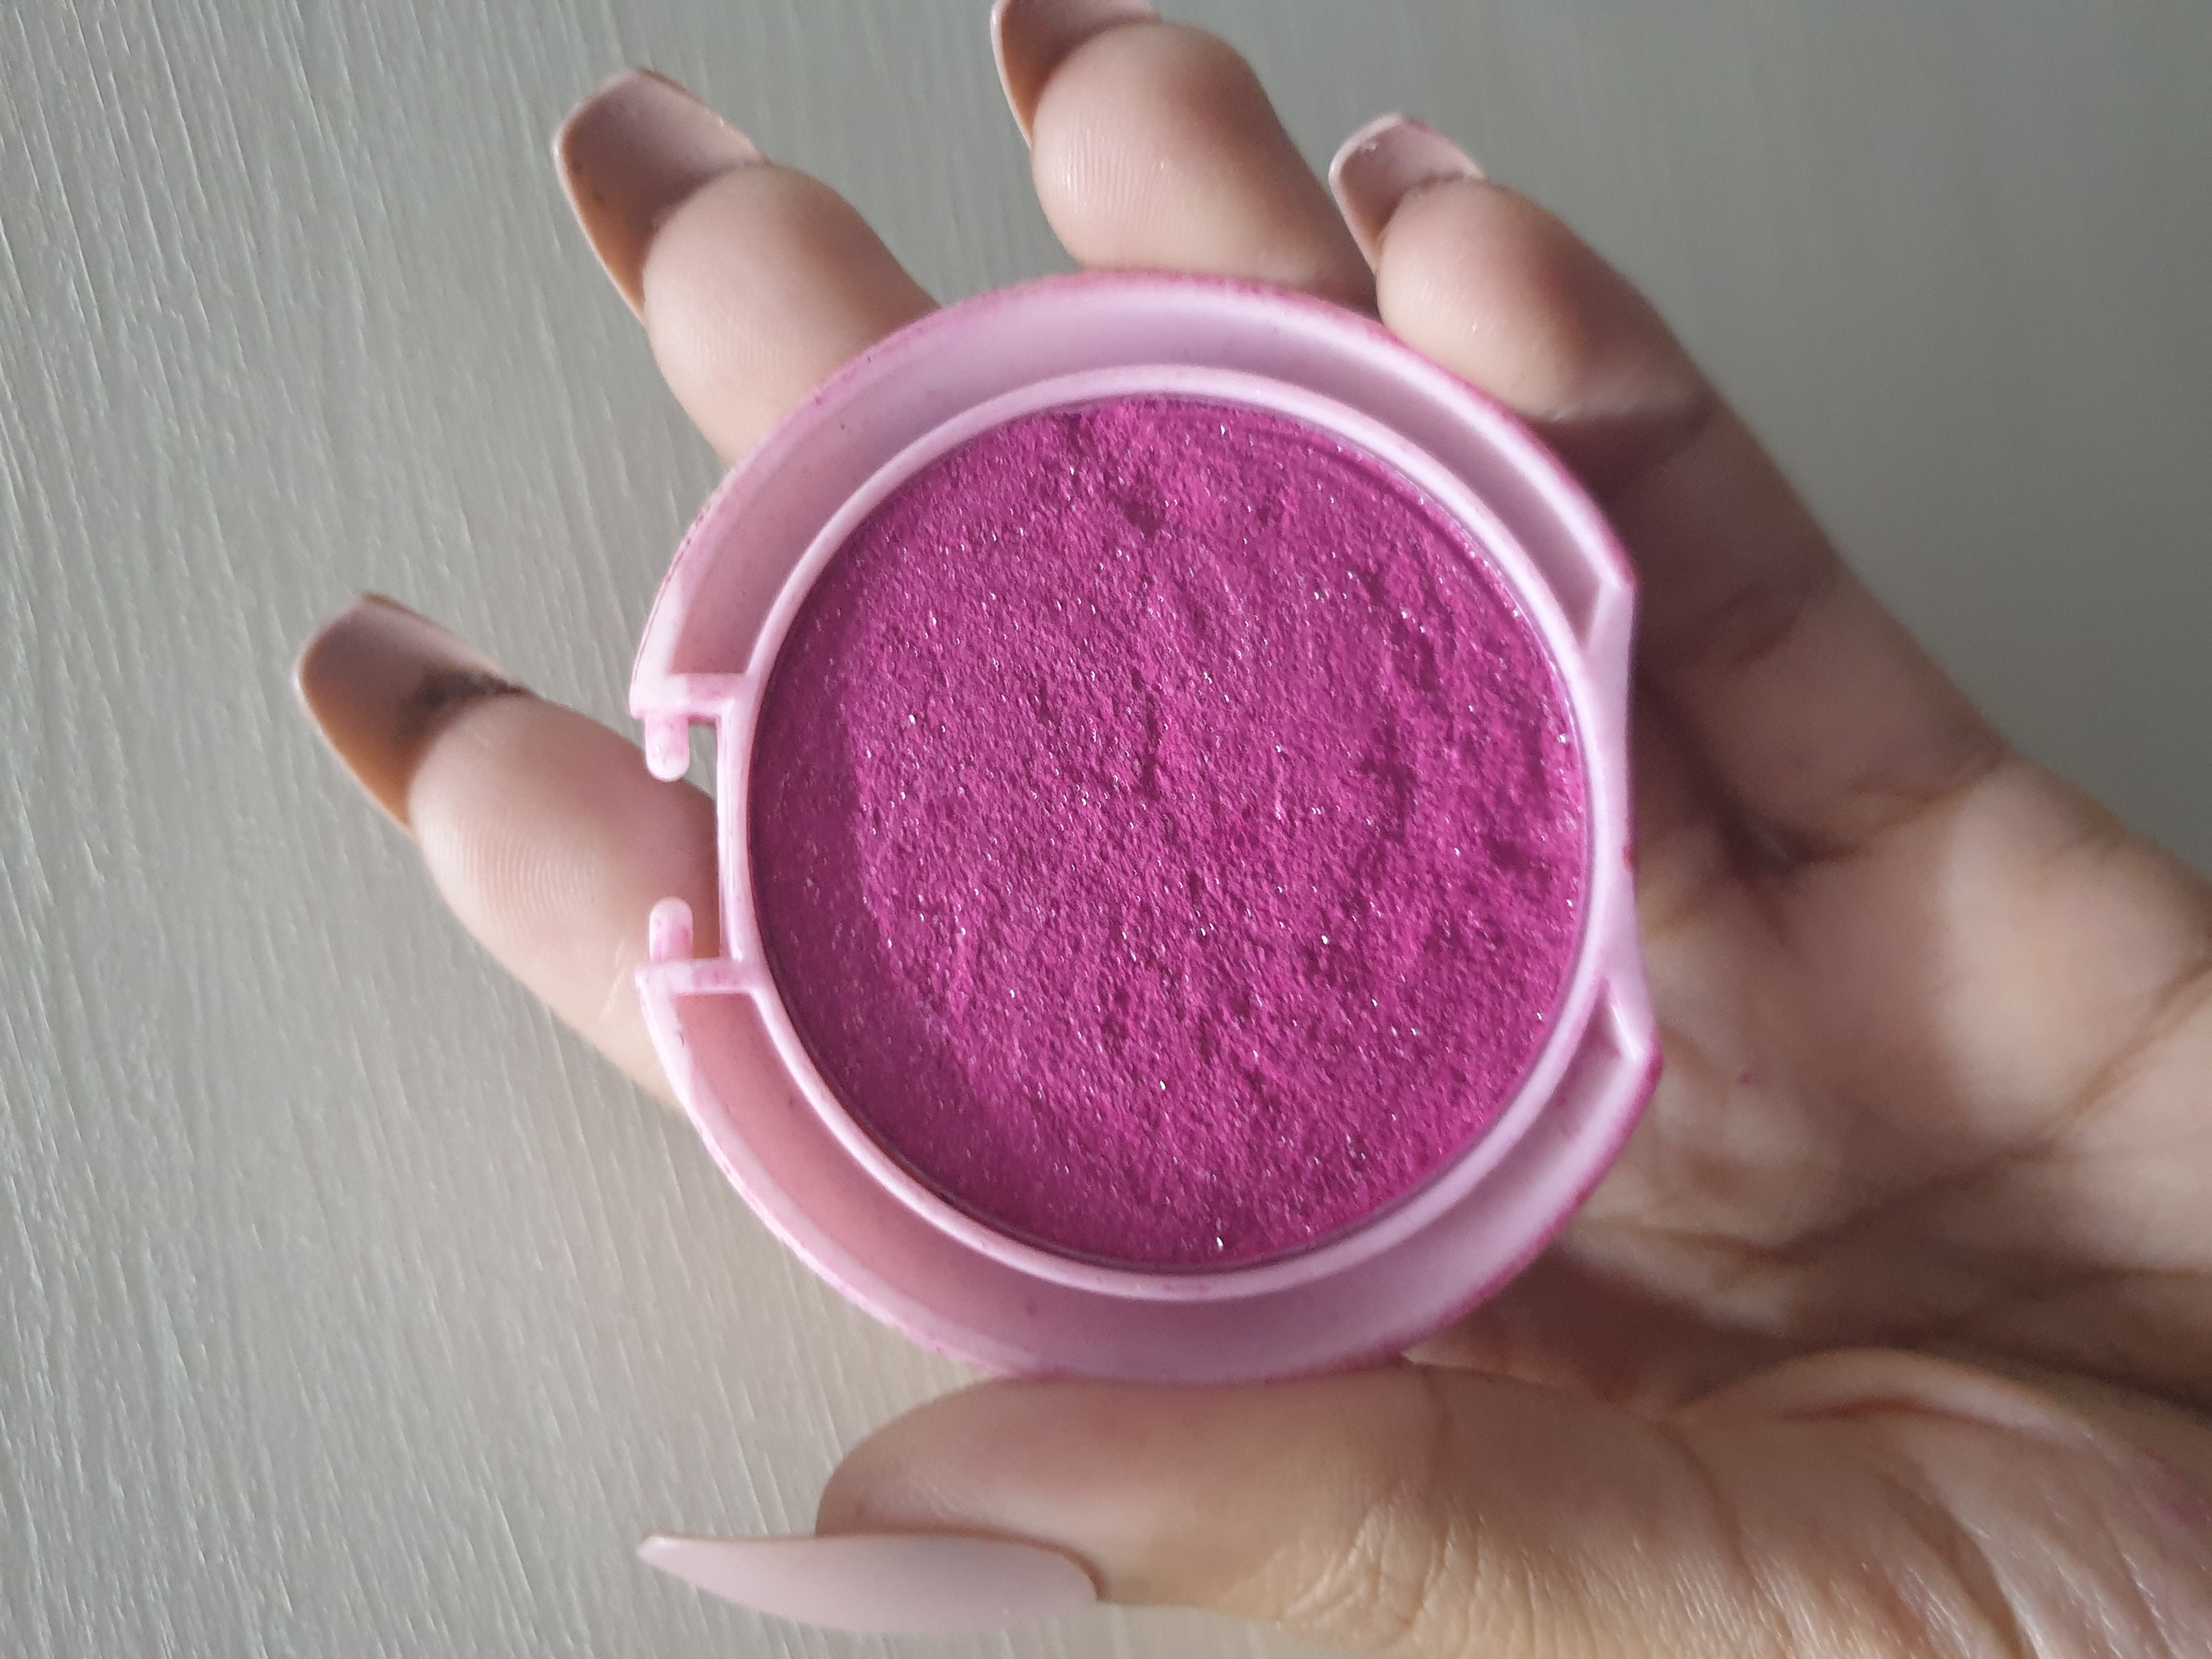 fab-review-Most affordable blush-By vitika_singh-1